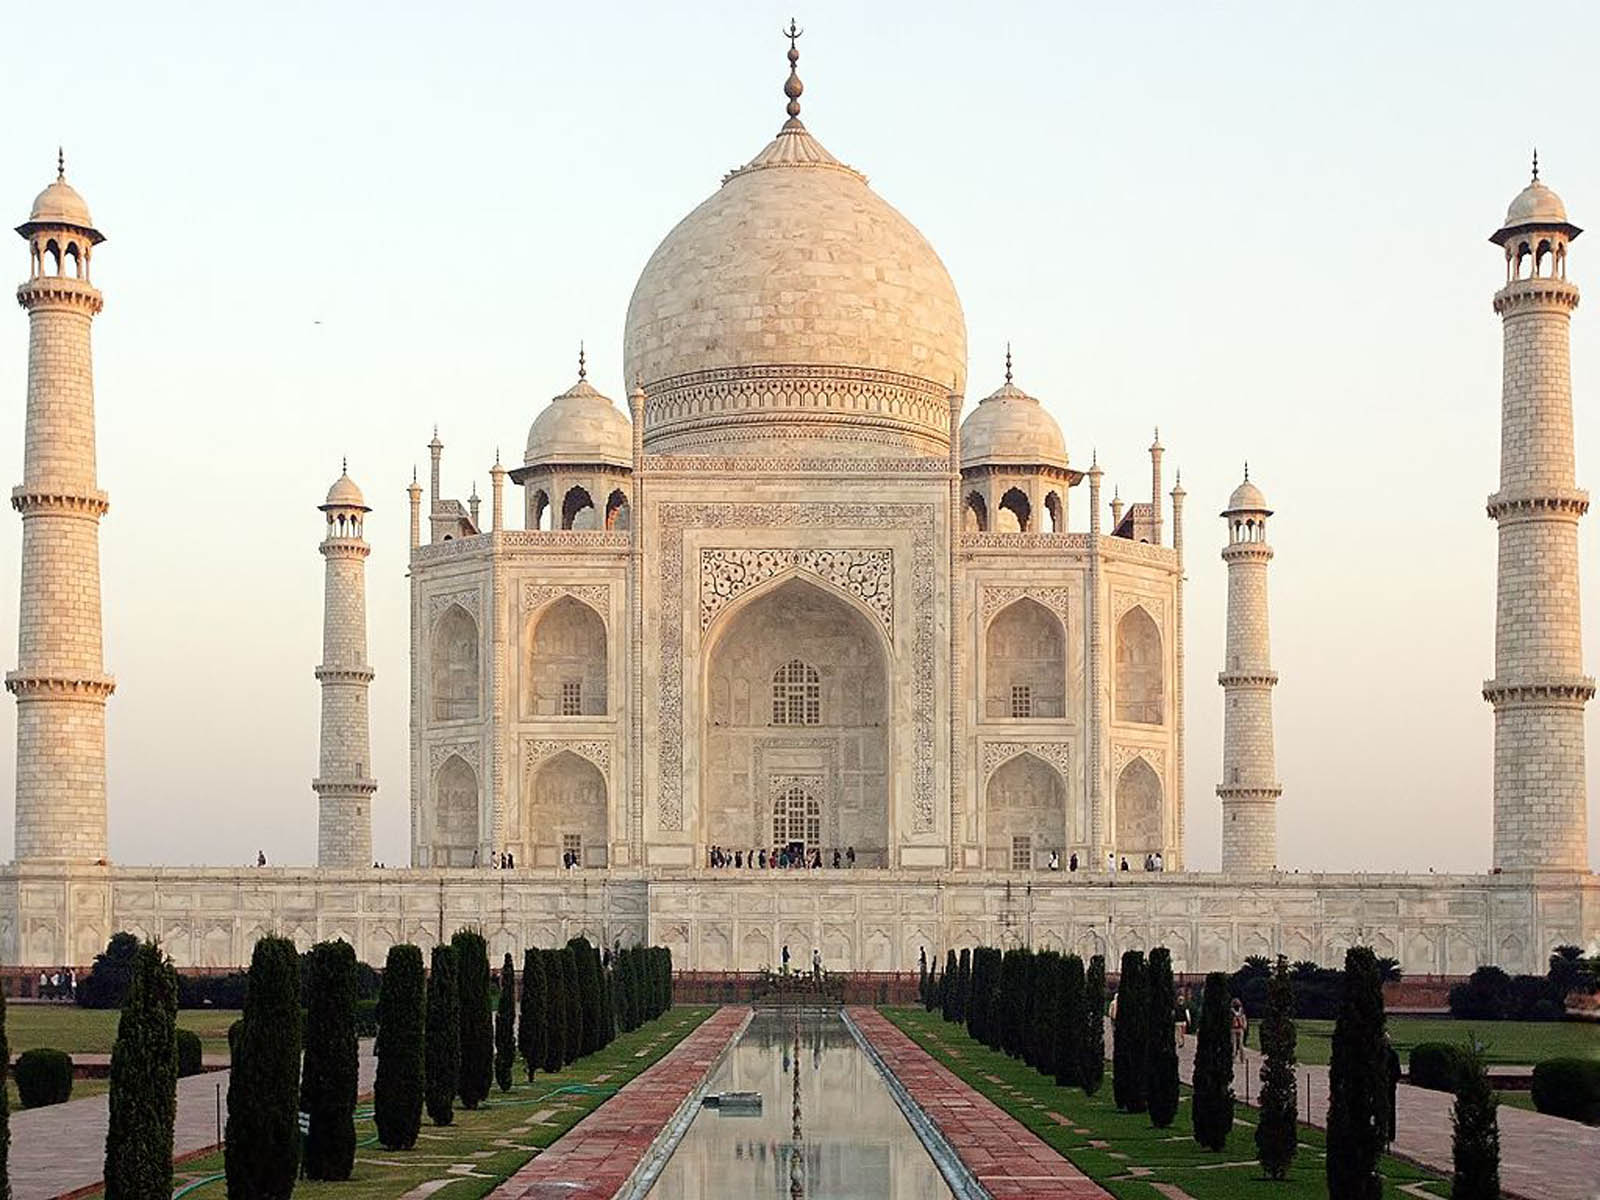 Hd wallpaper taj mahal - Taj Mahal Wallpapers